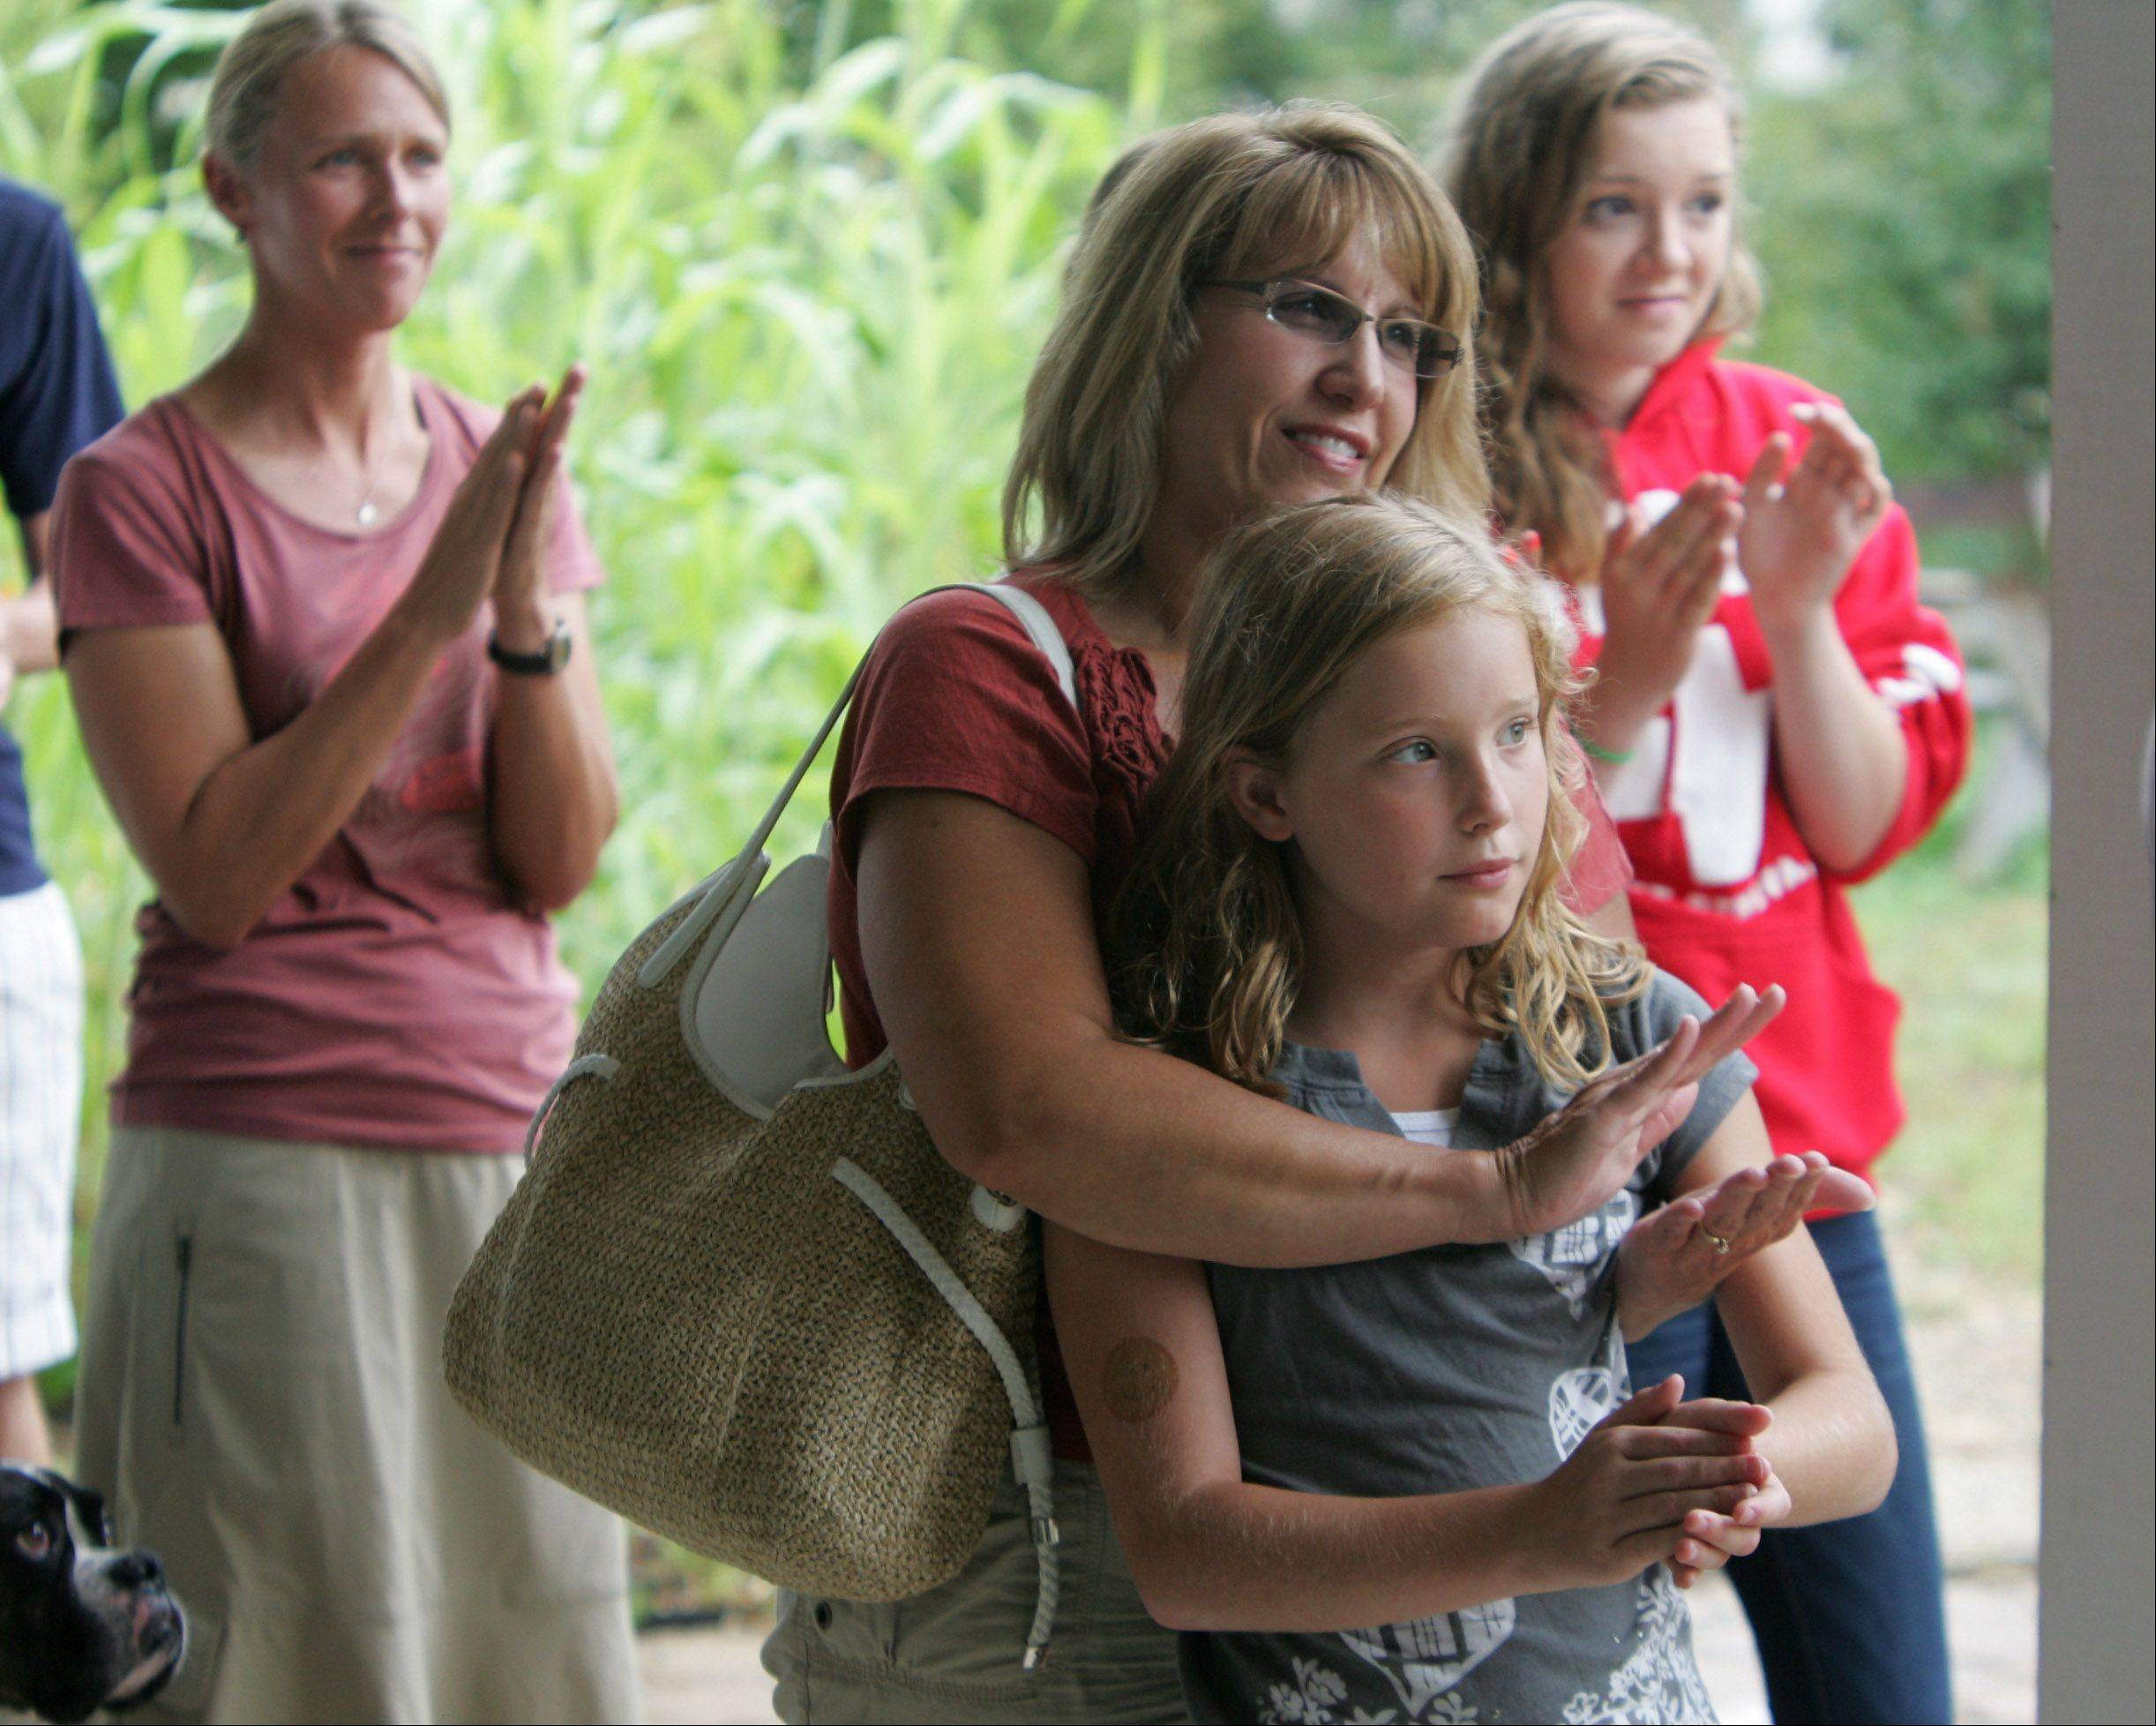 Cindy Batz of Gurnee and her daughter Amy, 10, join other supporters clapping for Abby Goldberg of Grayslake. Goldberg advocates giving communities more authority to ban plastic bags.